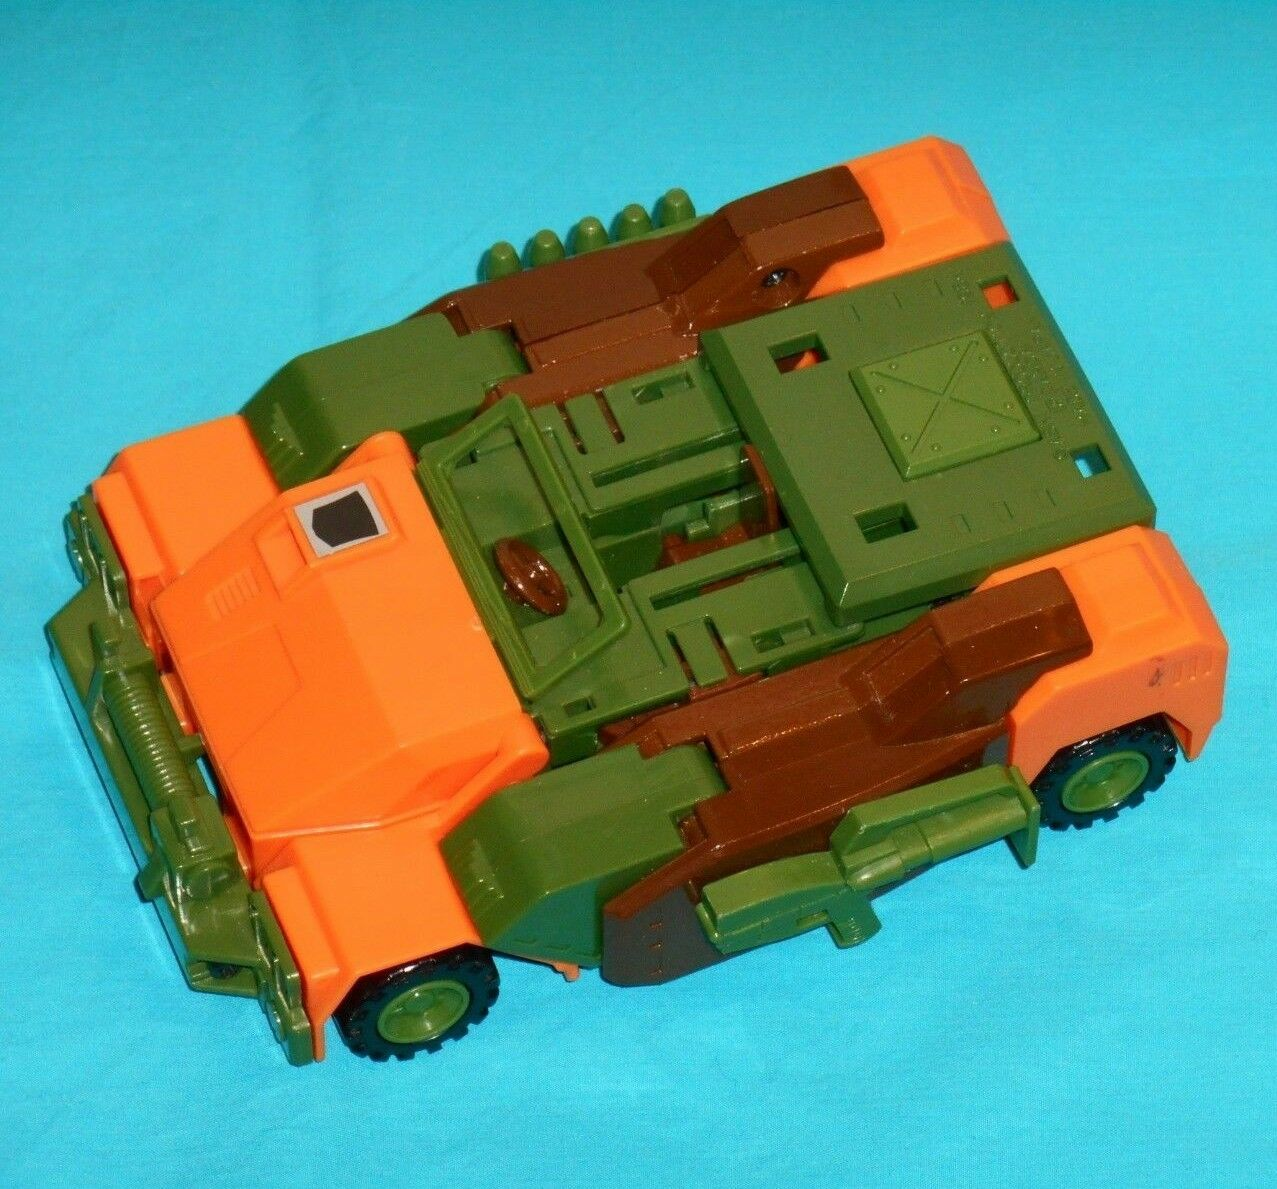 Original G1 Transformers stradaautobusTER cifra only excellent condition